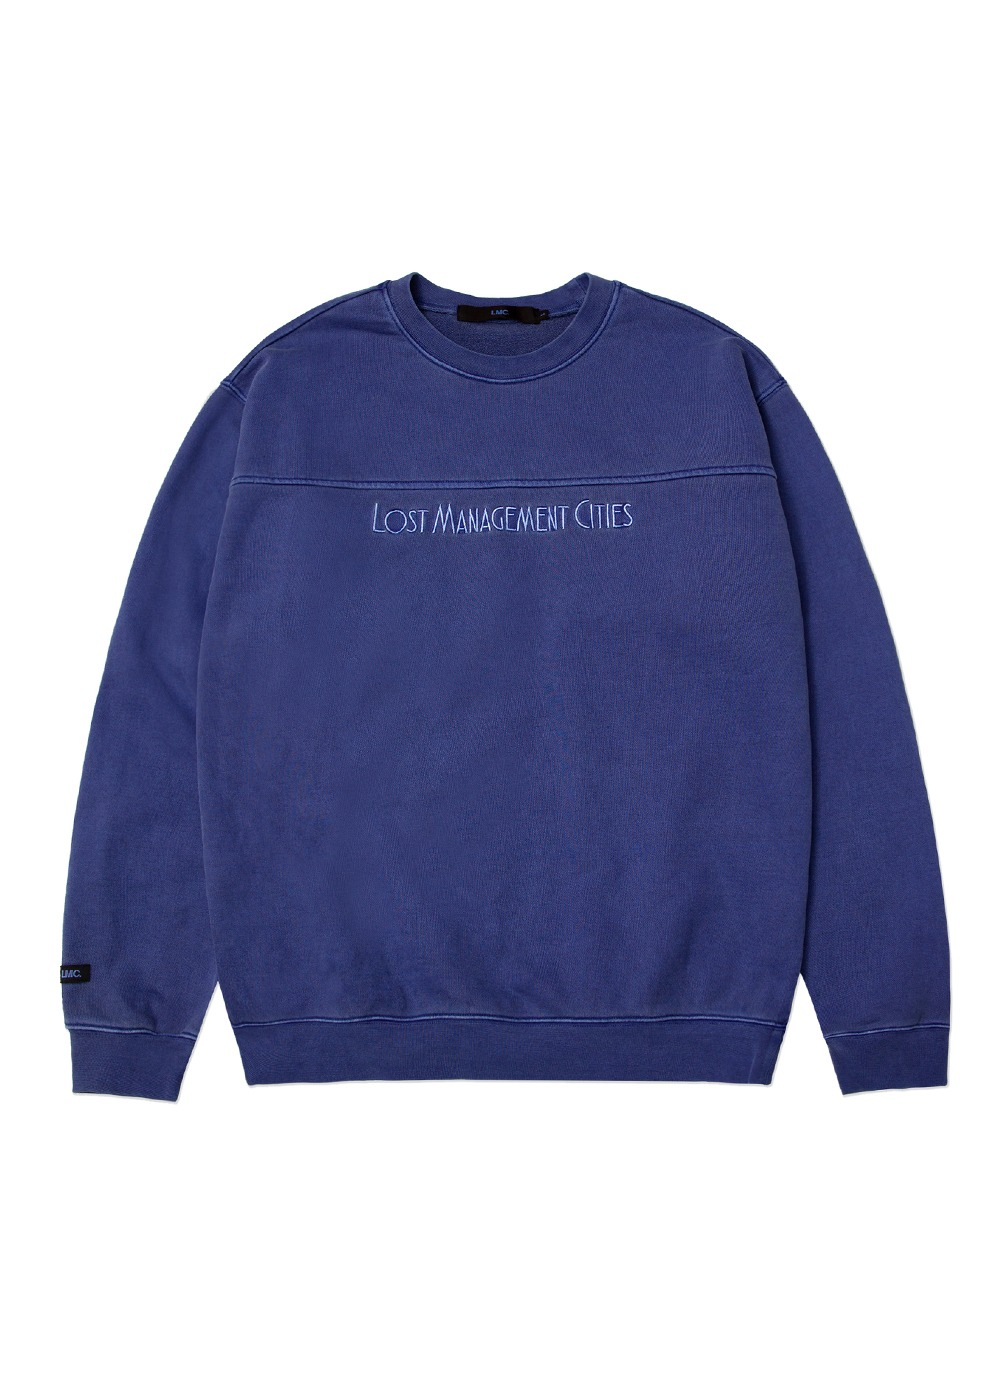 LMC OVERDYED JAZZ SWEATSHIRT purple blue